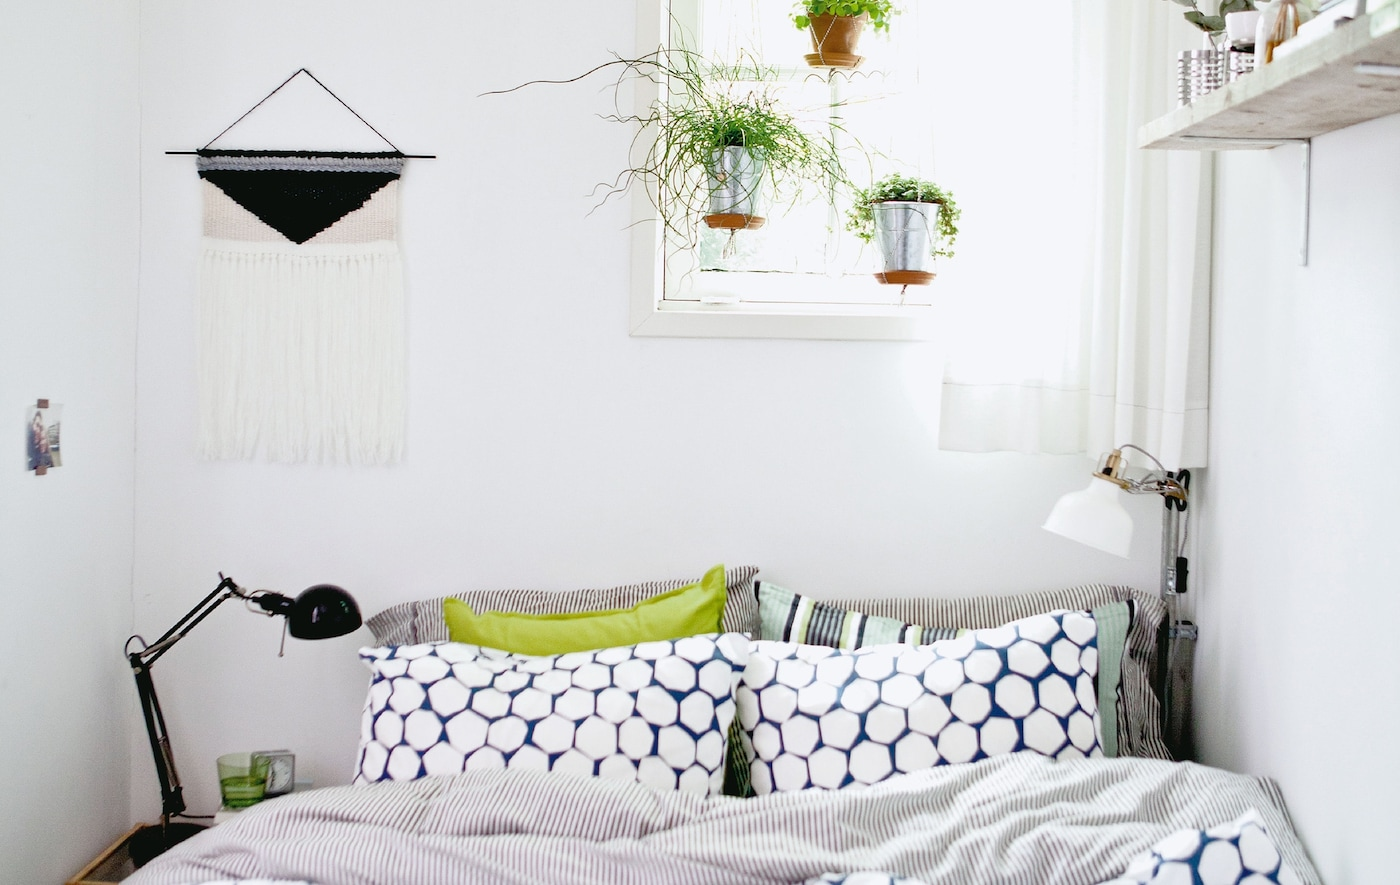 A small room with double bed, hanging plants and shelf.